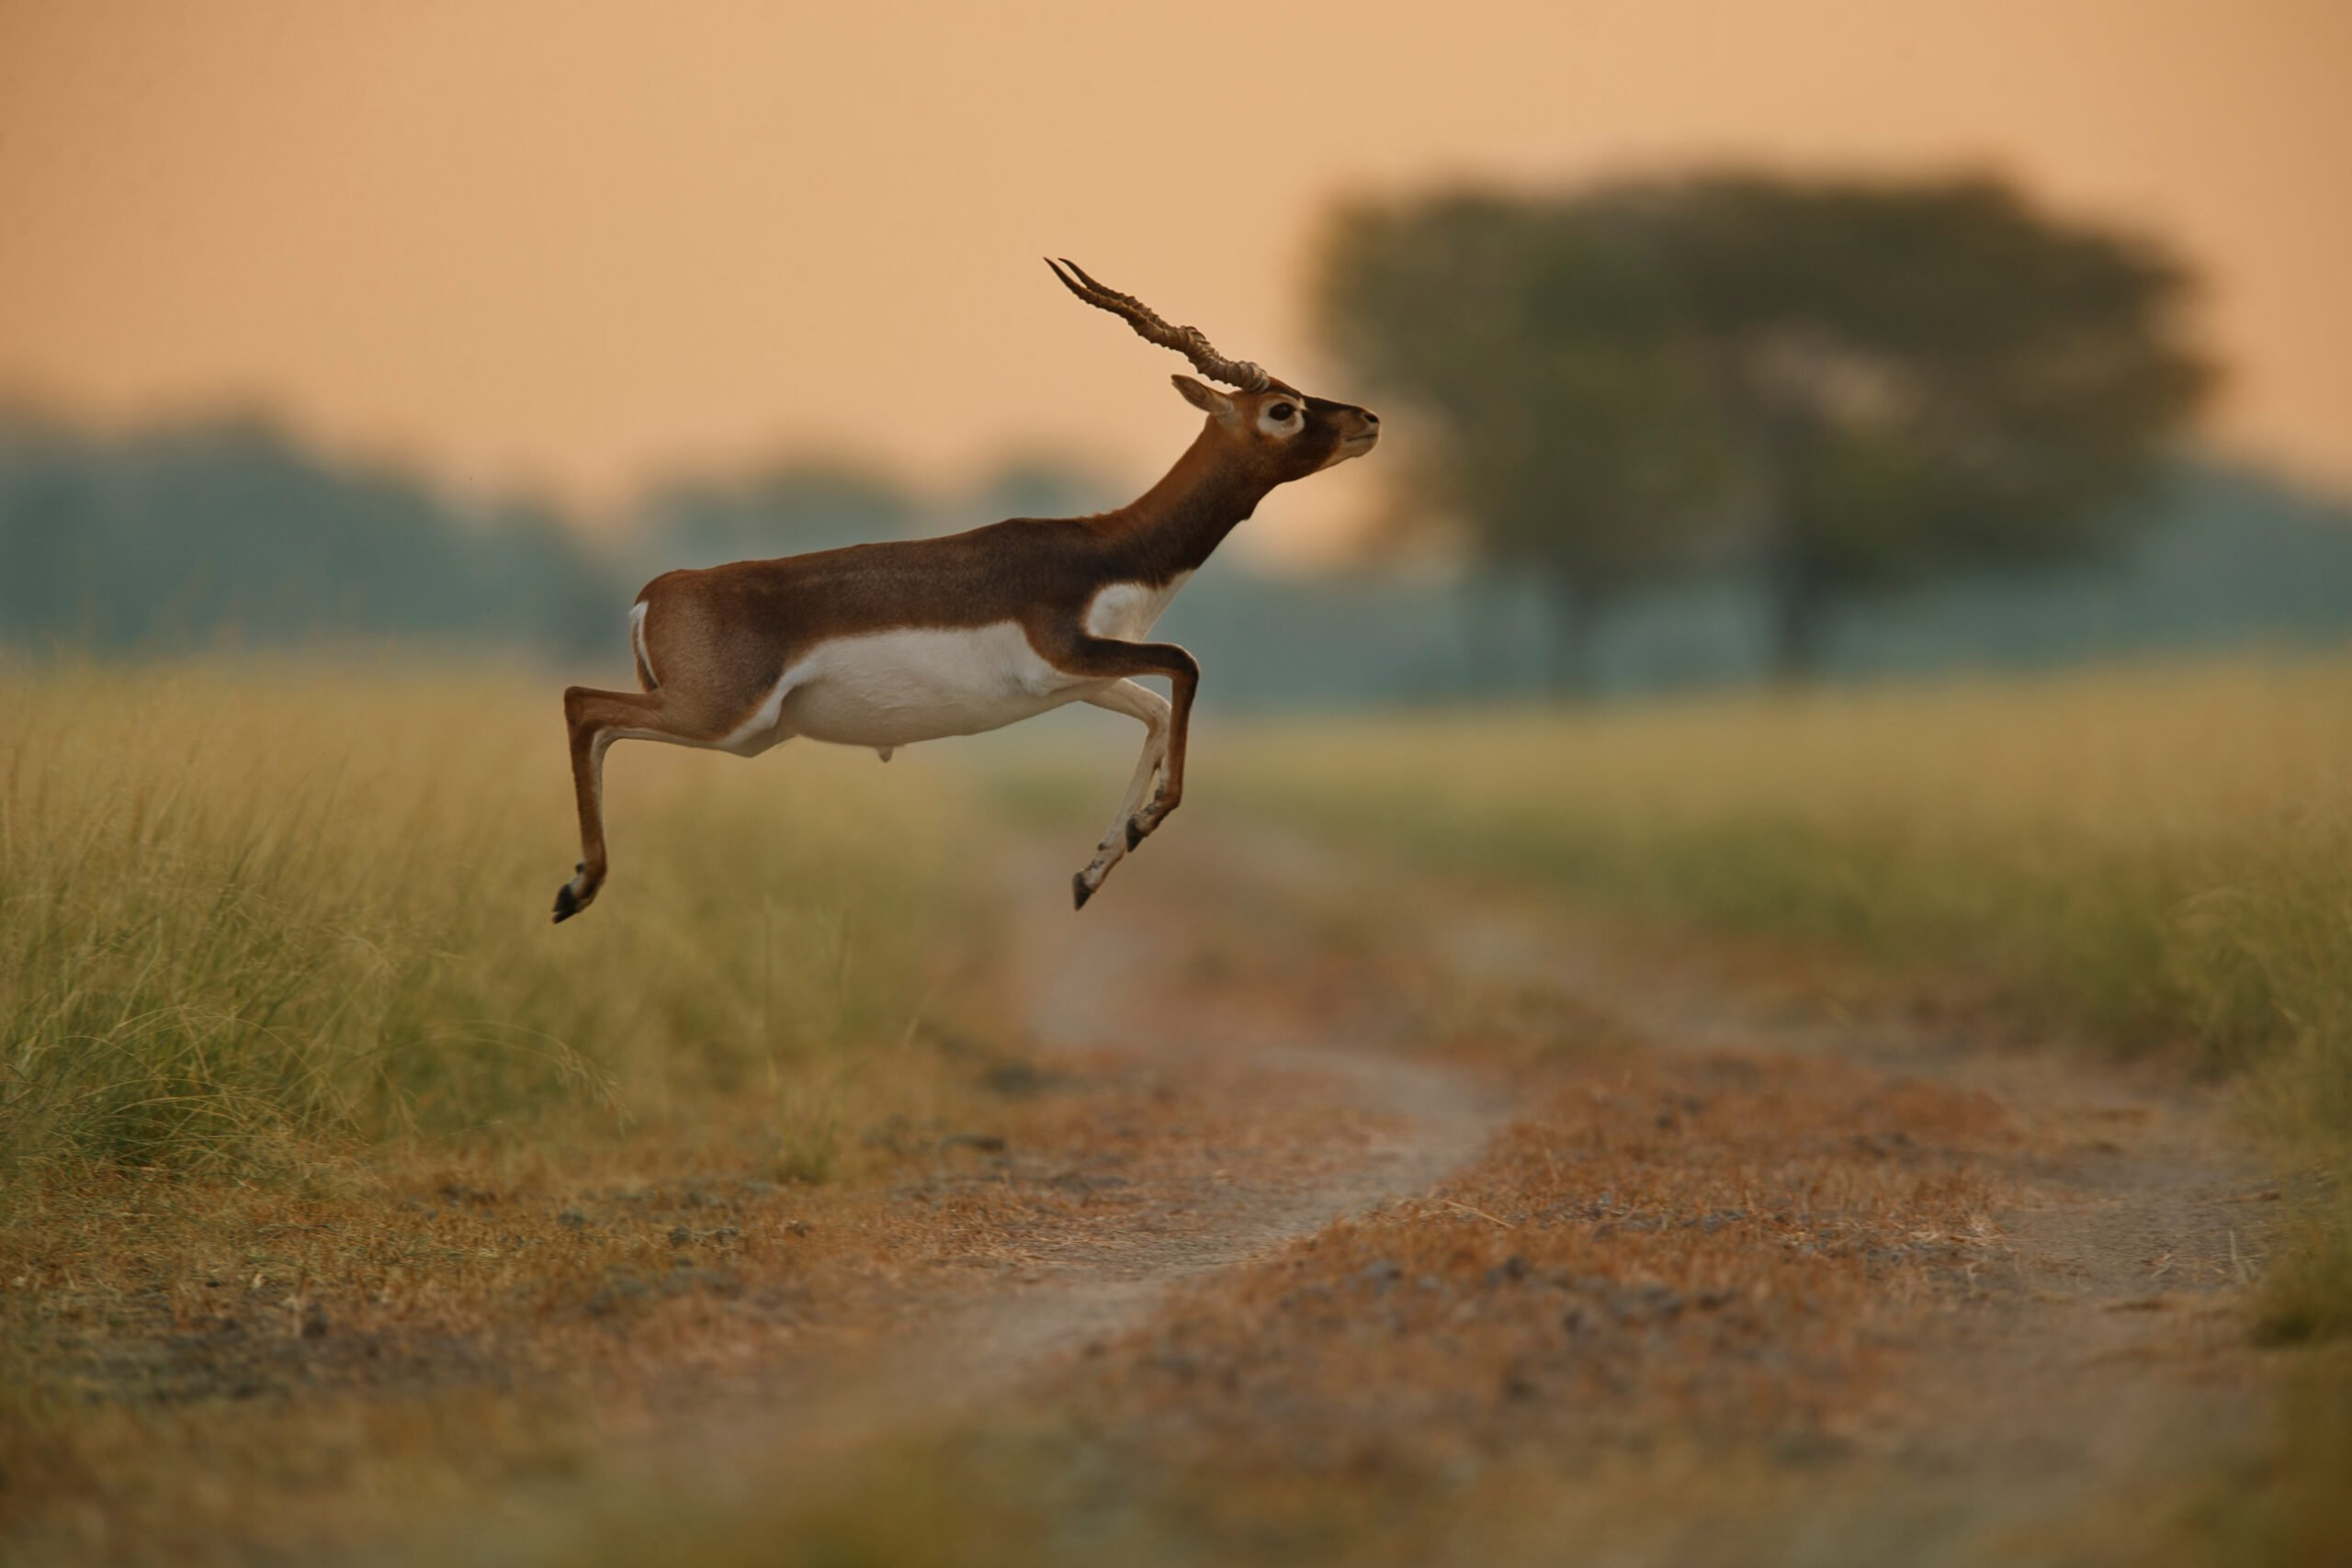 Visit The Home To A Healthy Population Of Blackbuck In Our 2 Day Legacy Of Sultans & Wildlife Tour In Bidar